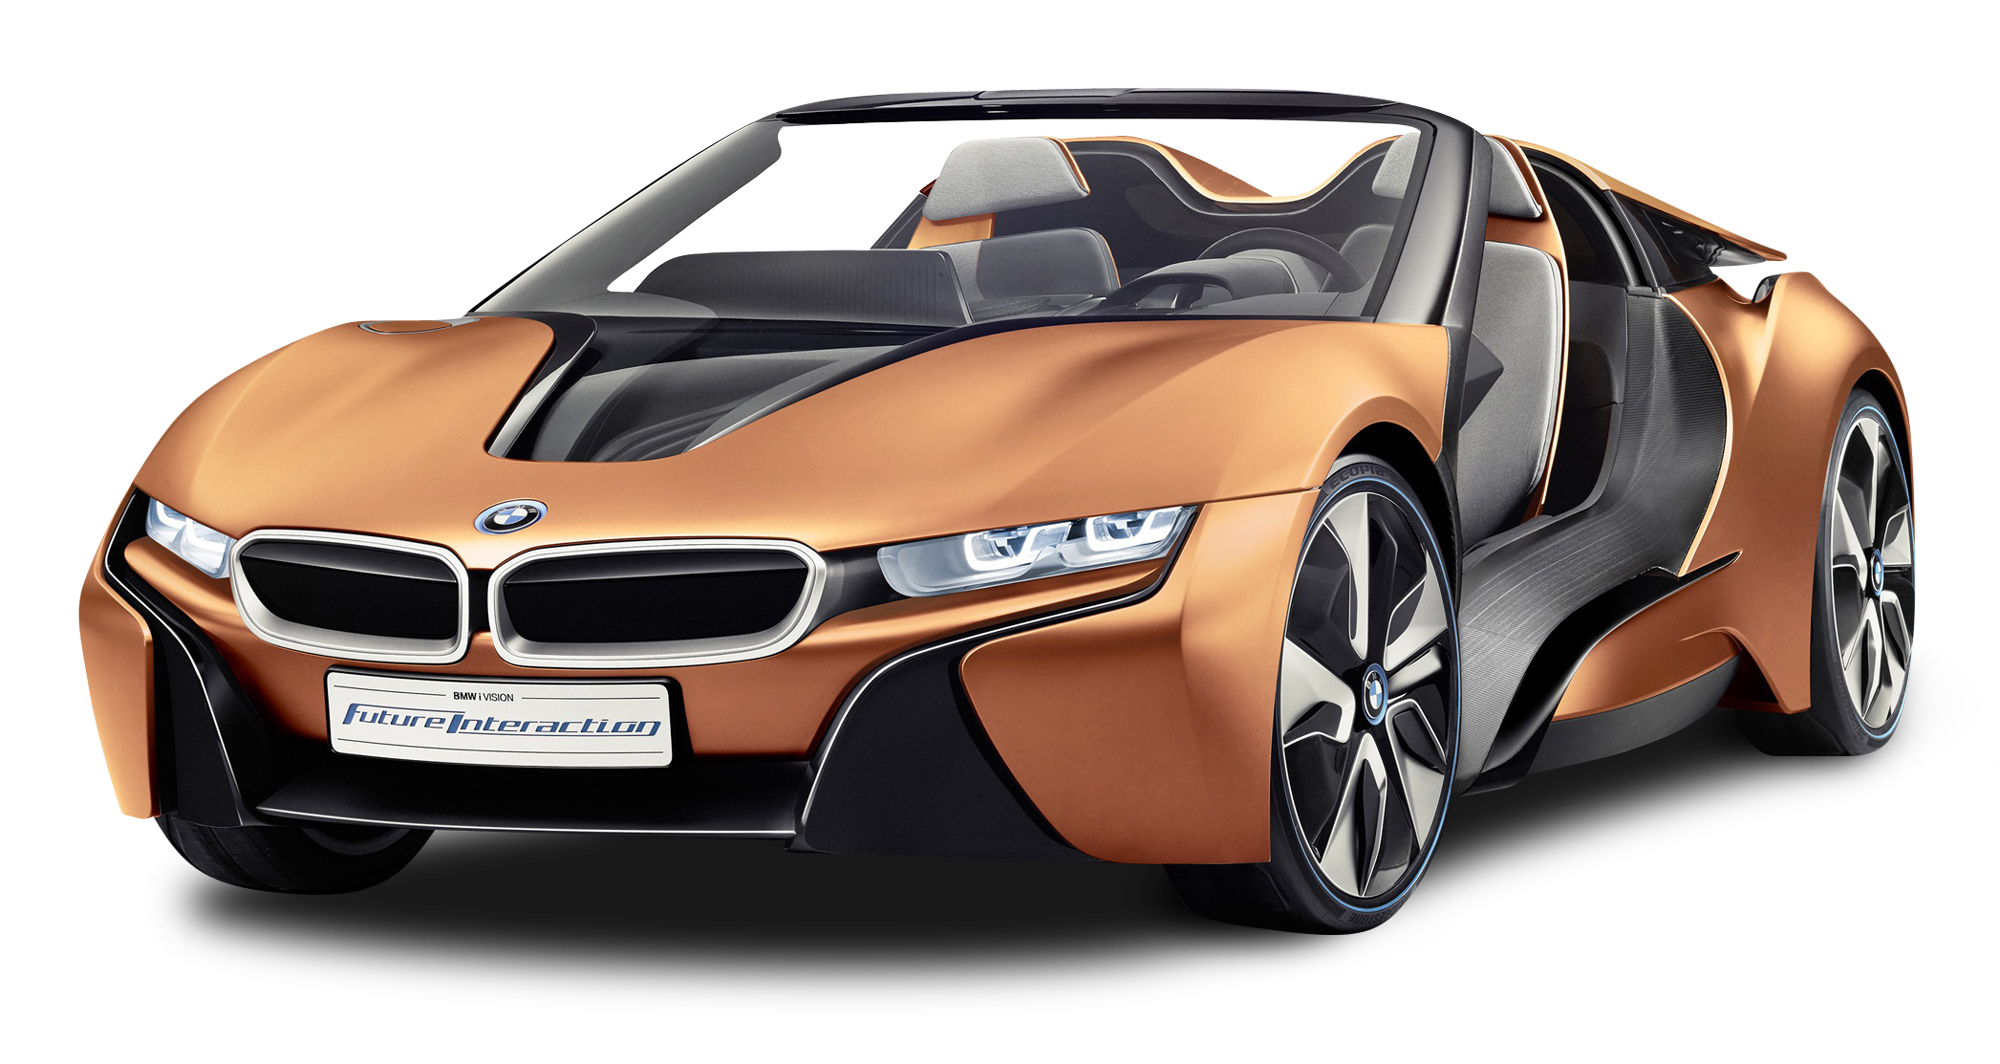 Orange BMW i8 Spyder Car PNG Image.